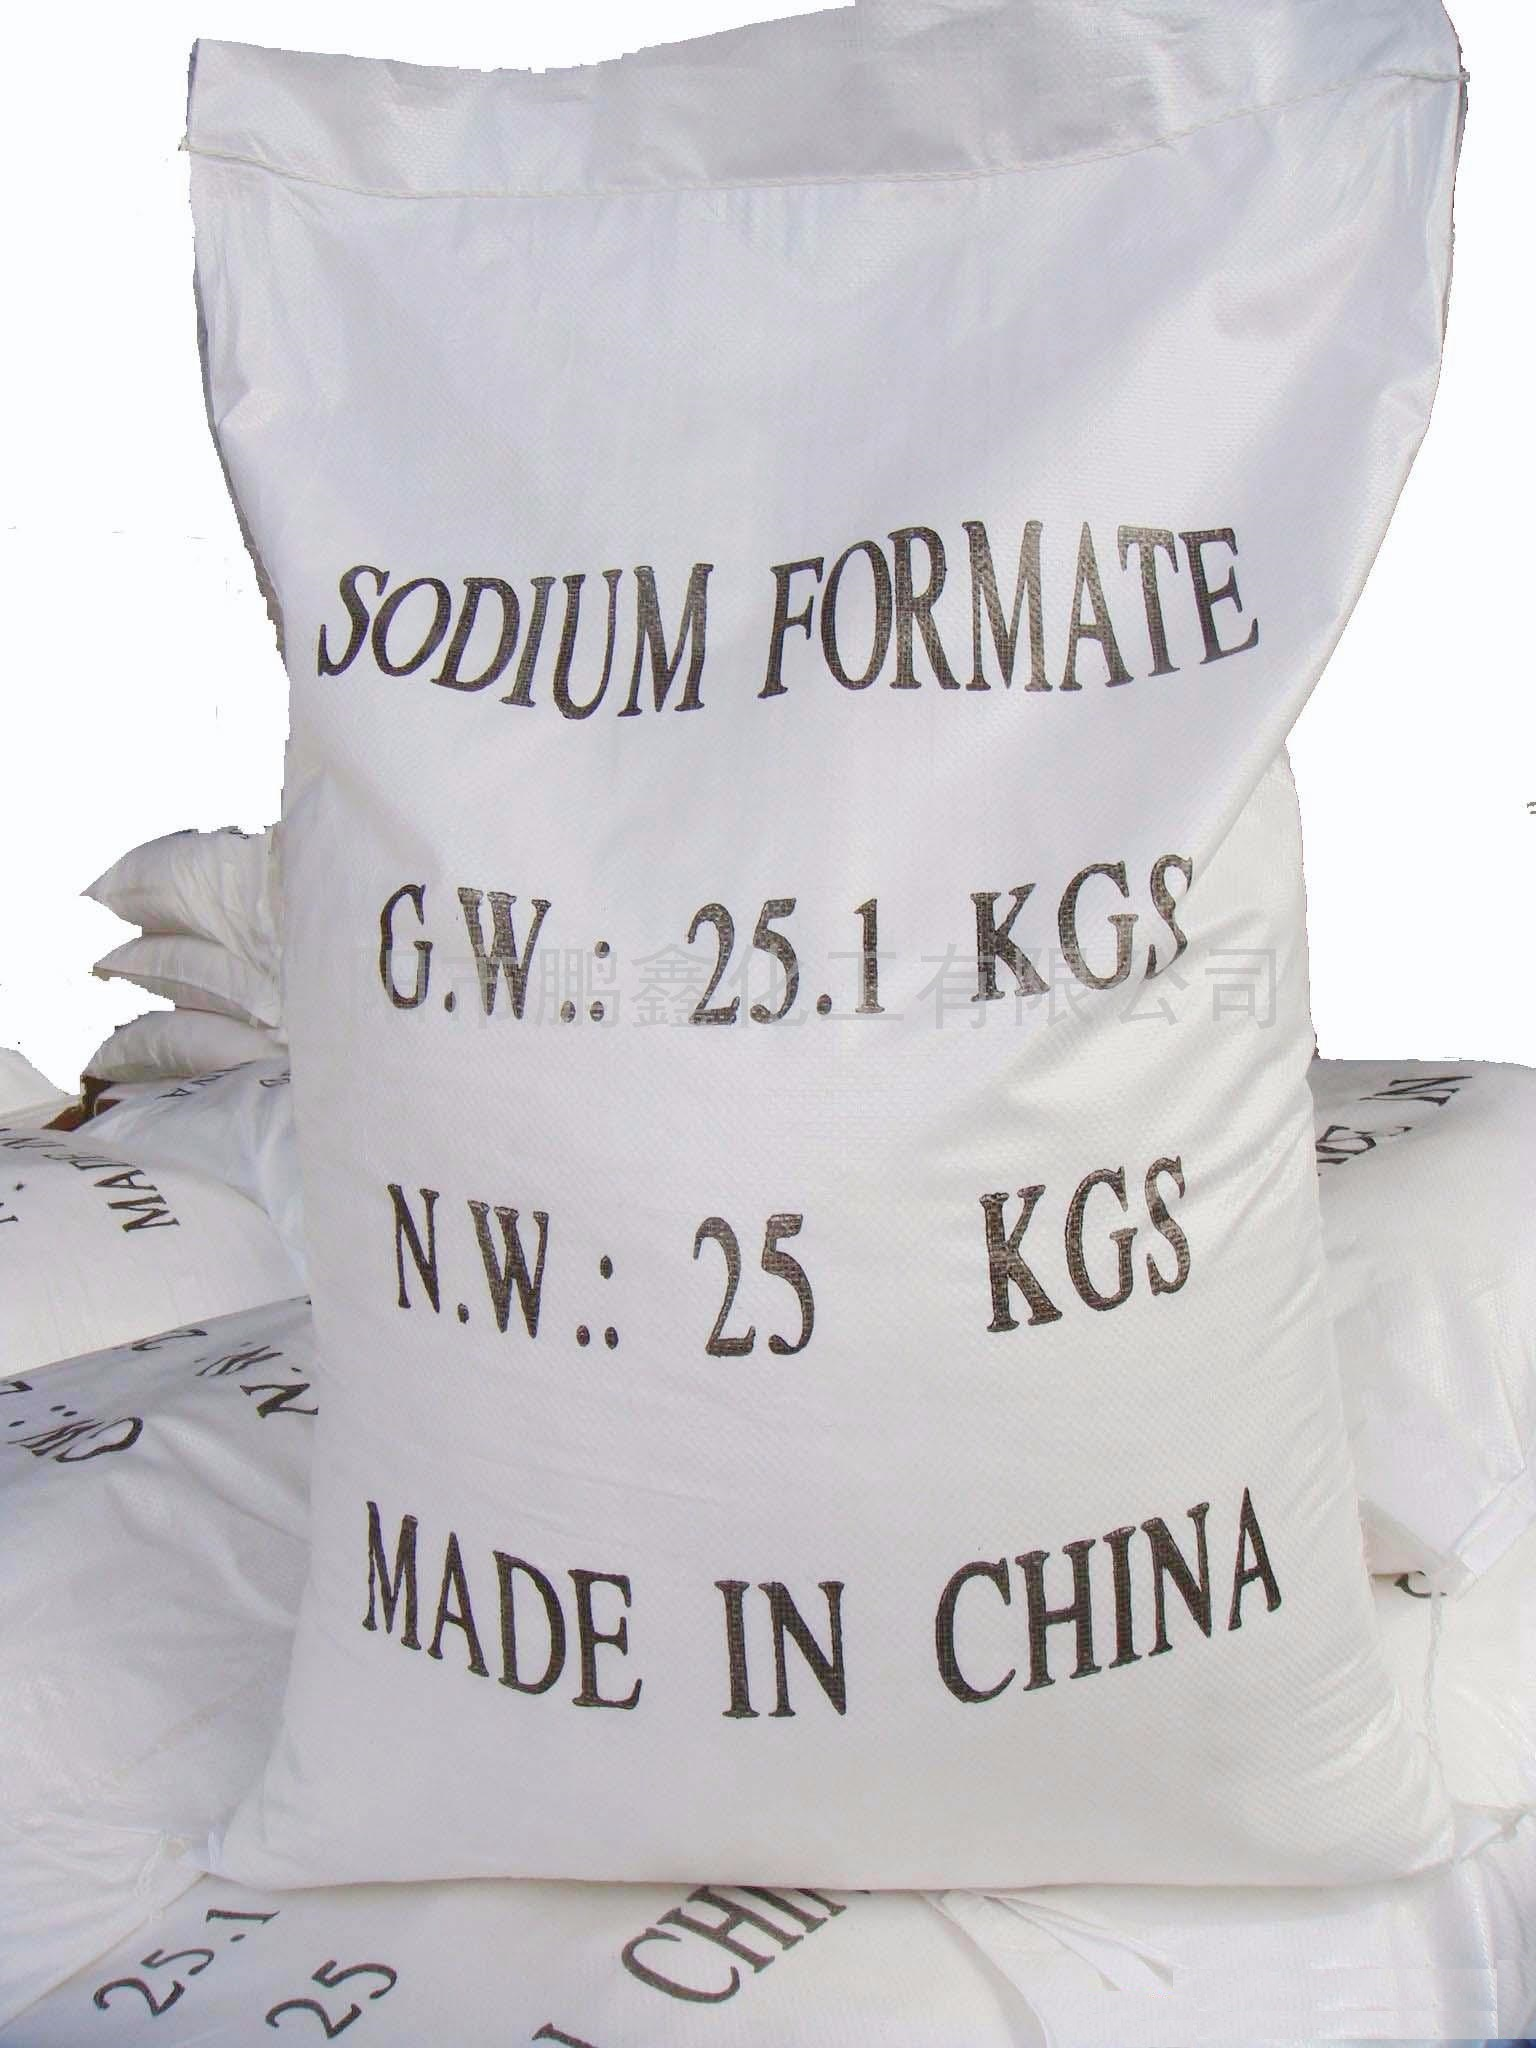 Sodium Formate Powder